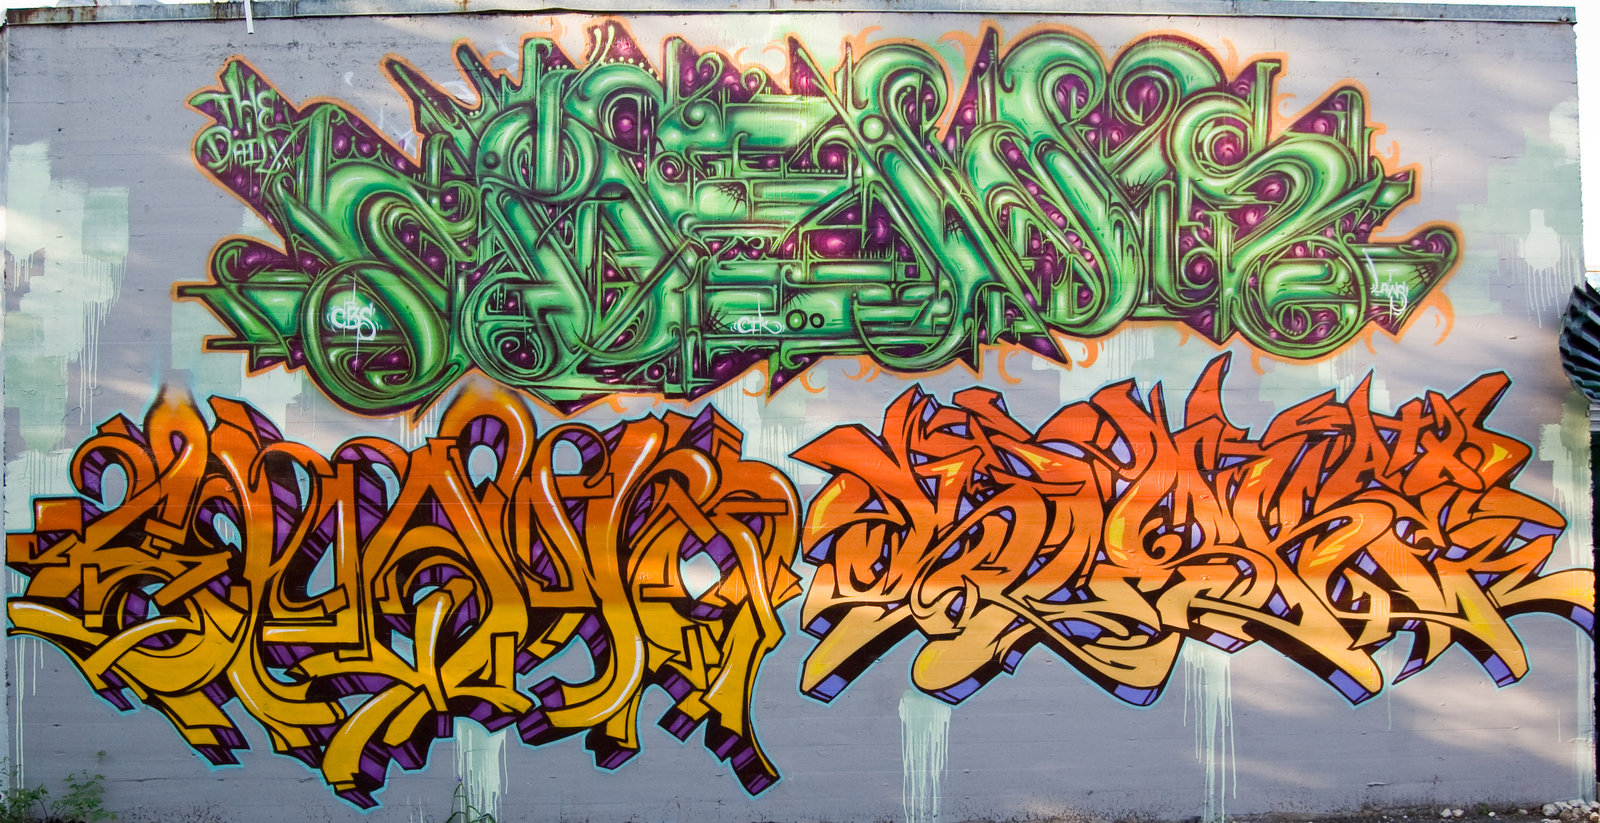 Wildstyle_Graffiti_7_by_ferretfacejones